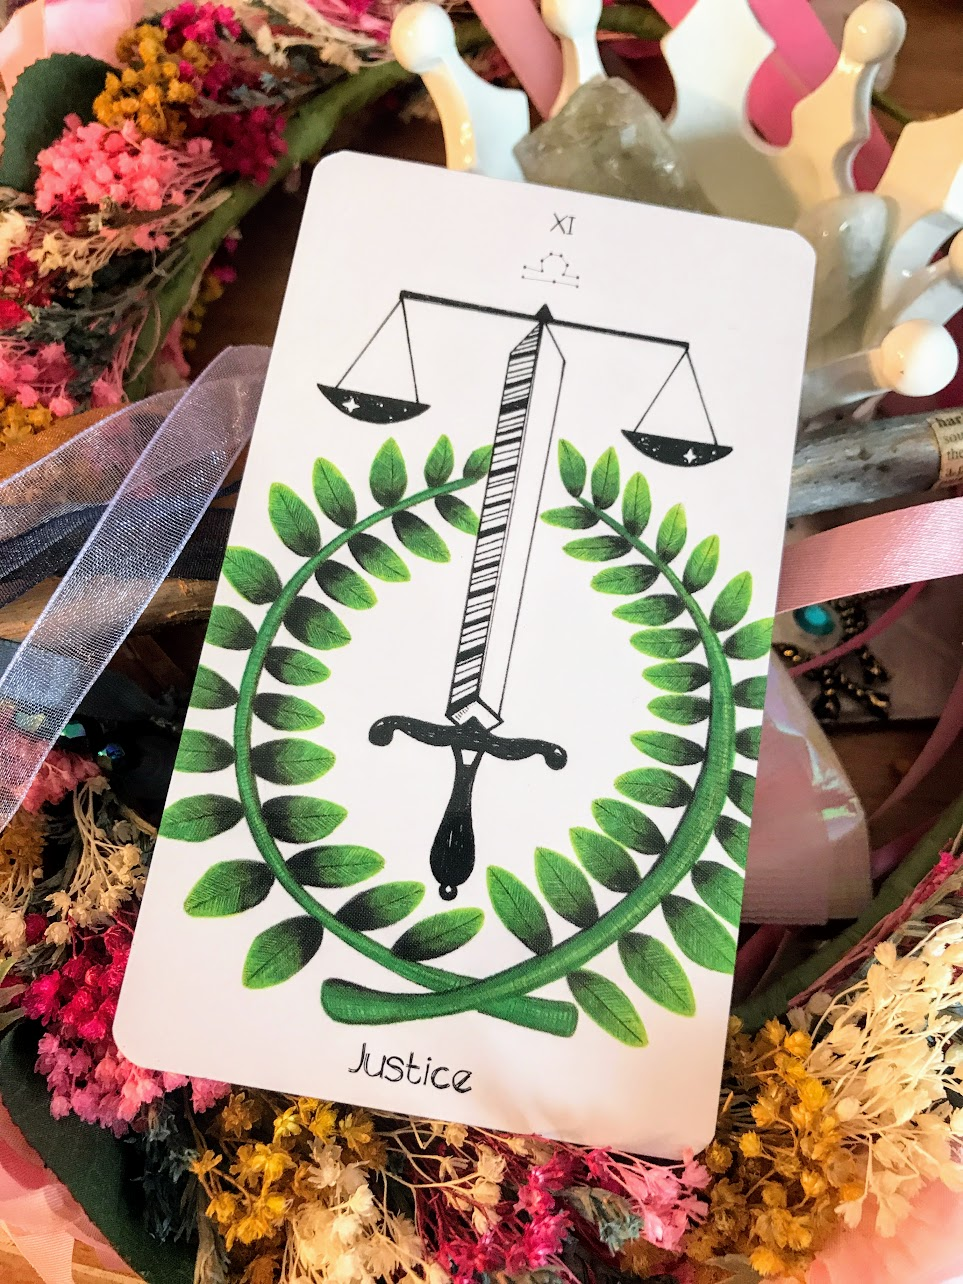 Pisces - Justice - Naked Heart Tarot.jpg